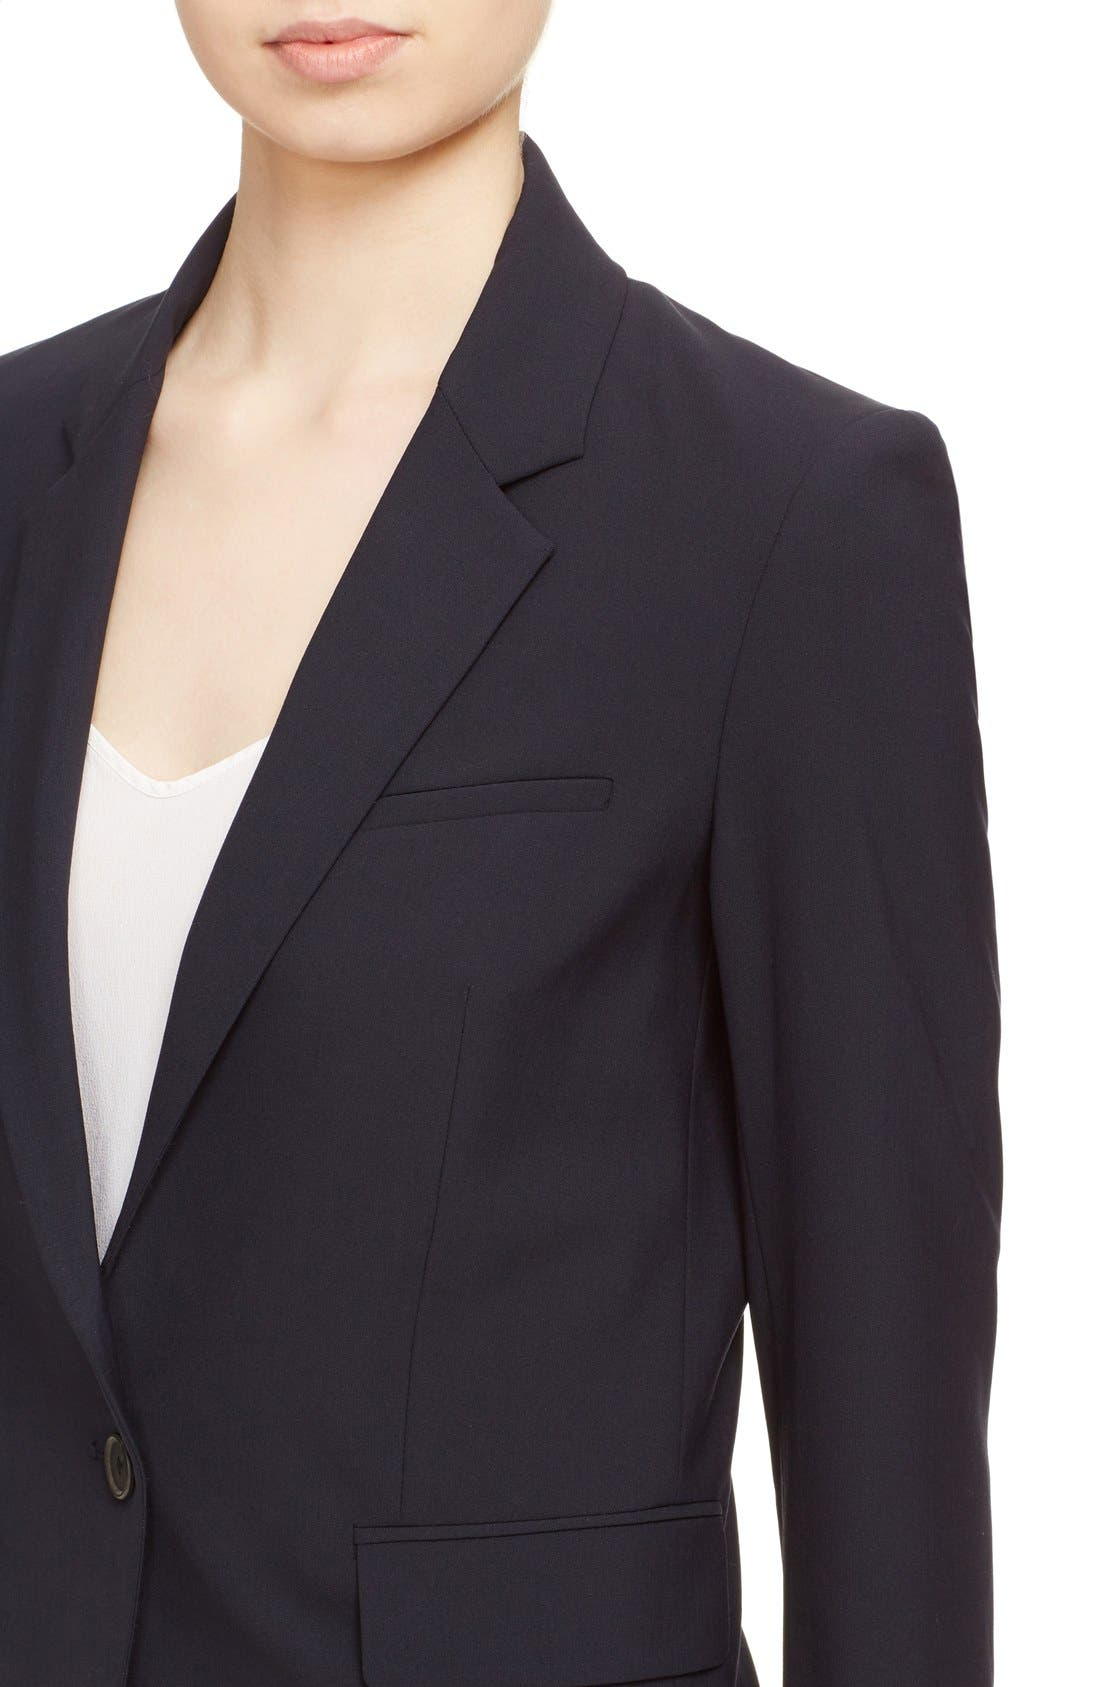 VERONICA BEARD, 'Classic' Lambswool Blend Single Button Blazer, Alternate thumbnail 4, color, NAVY